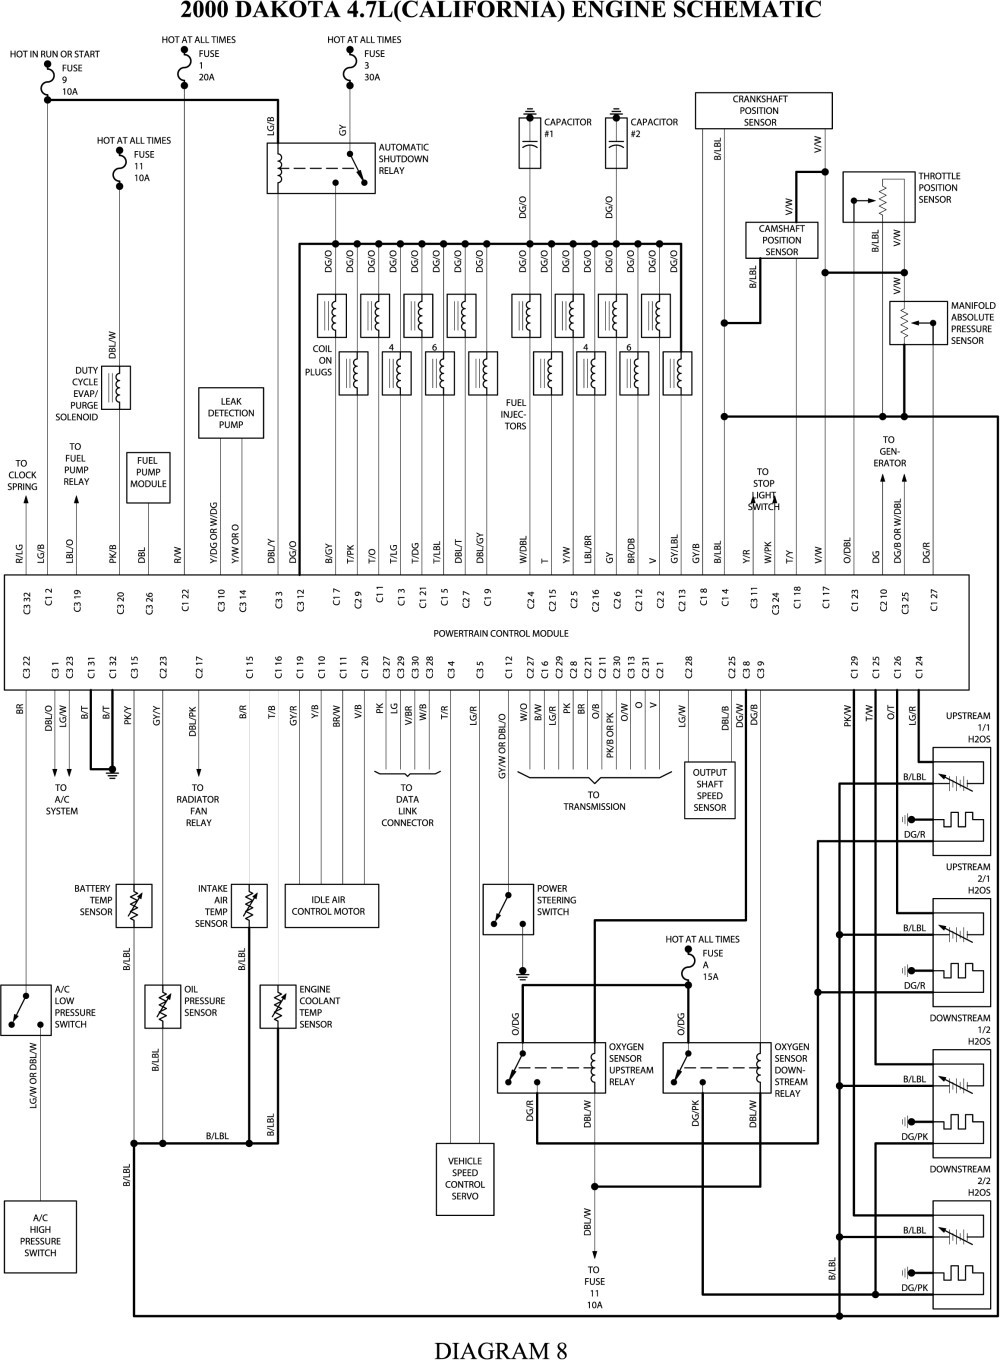 [WQZT_9871]  Wiring Diagram 2007 Kenworth T800 2004 Ford F 250 Wiring Diagram -  hazzard.astrea-construction.fr | Kenworth T600 Wiring Diagrams |  | Begeboy Wiring Diagram Source - ASTREA CONSTRUCTION